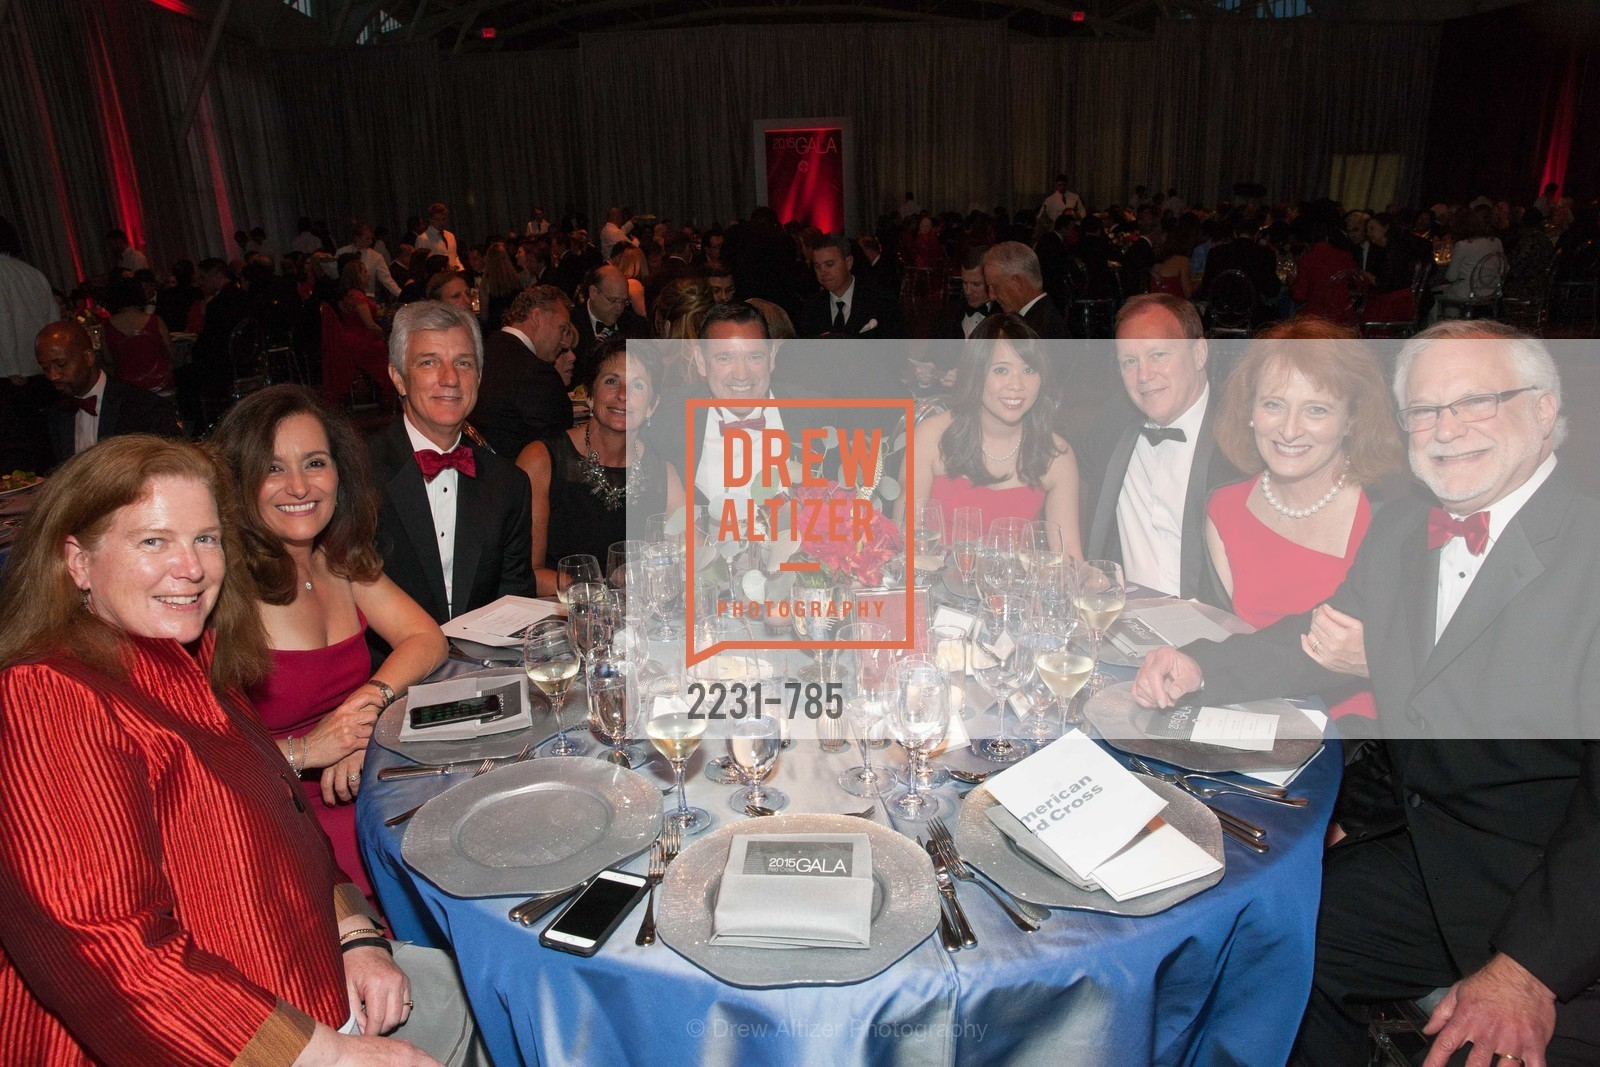 Joanne Hayes-White, Geisha Williams, Jay Williams, Lee Anderson, Barry Anderson, Phoebe Leong, Bill Lund, Ann Wilson, Richard Cohn, 2015 RED CROSS Gala, US, April 12th, 2015,Drew Altizer, Drew Altizer Photography, full-service agency, private events, San Francisco photographer, photographer california